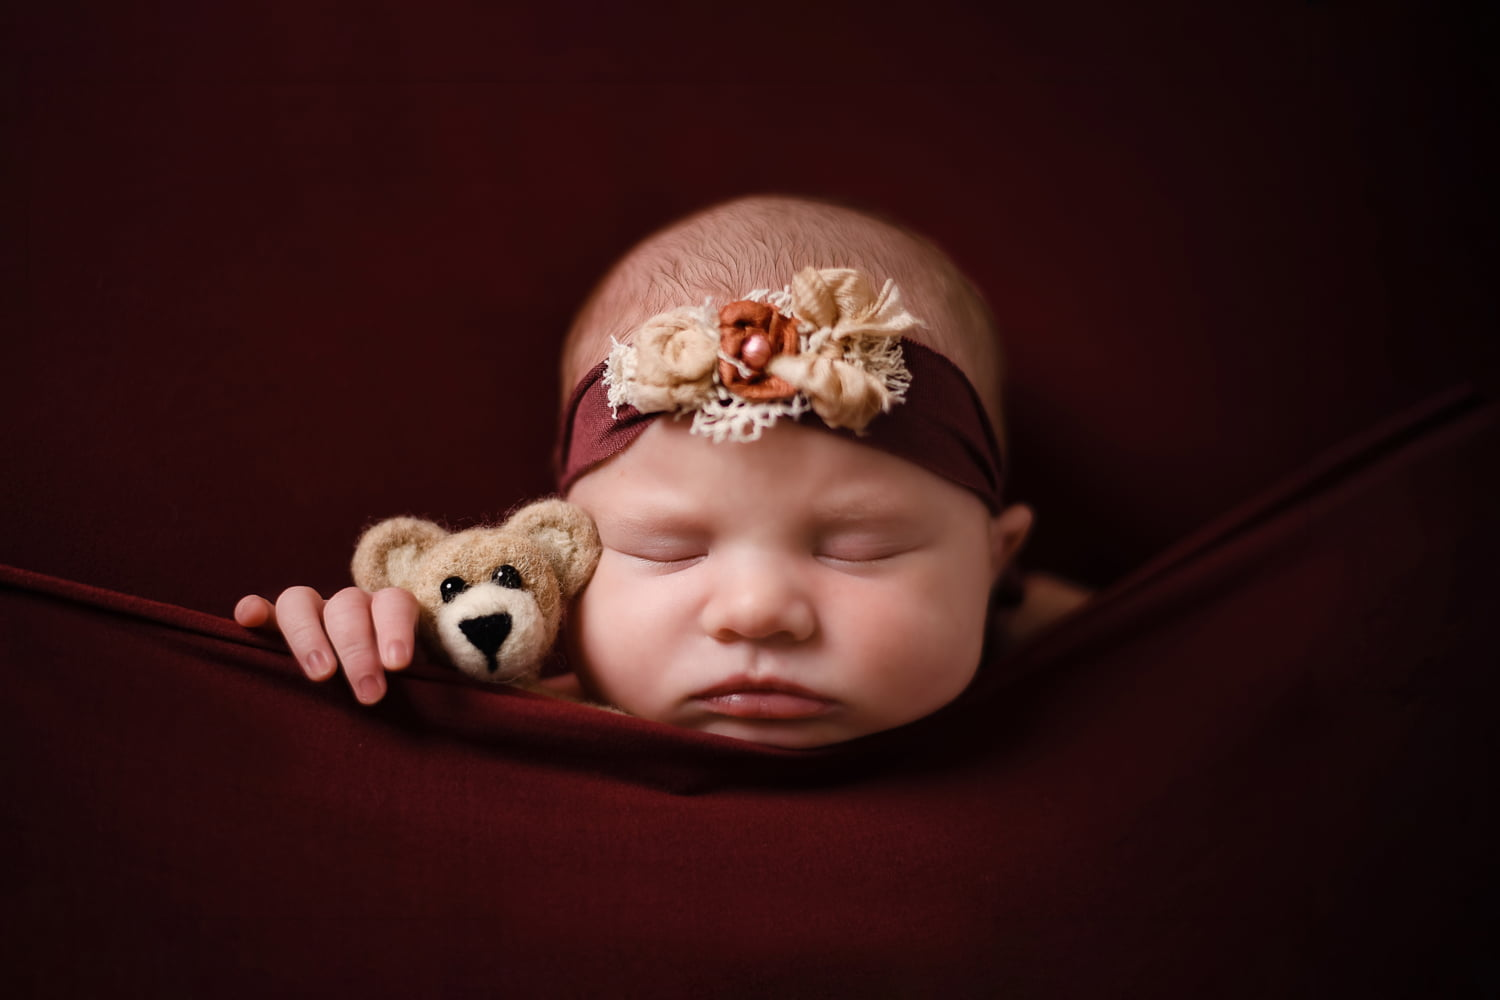 Newborn photo taken by Lisa Rowland Photography in Trenton, Florida